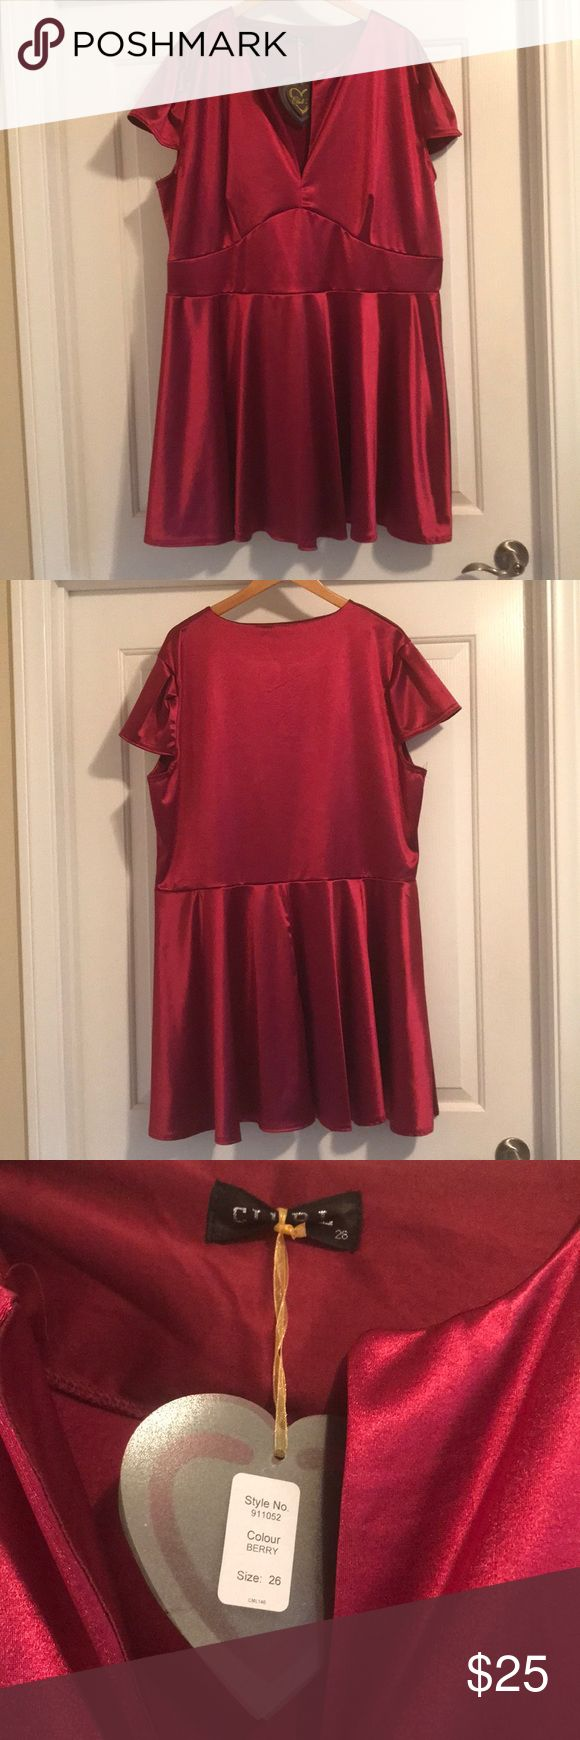 """Plus size satin skater dress This plus size satin skater dress is super comfortable. It has a v neck opening, and a large band in the front. It has some stretch, and hits around my knees (I'm 5'4"""" for reference). It by the brand Club L from ASOS. ASOS Curve Dresses"""